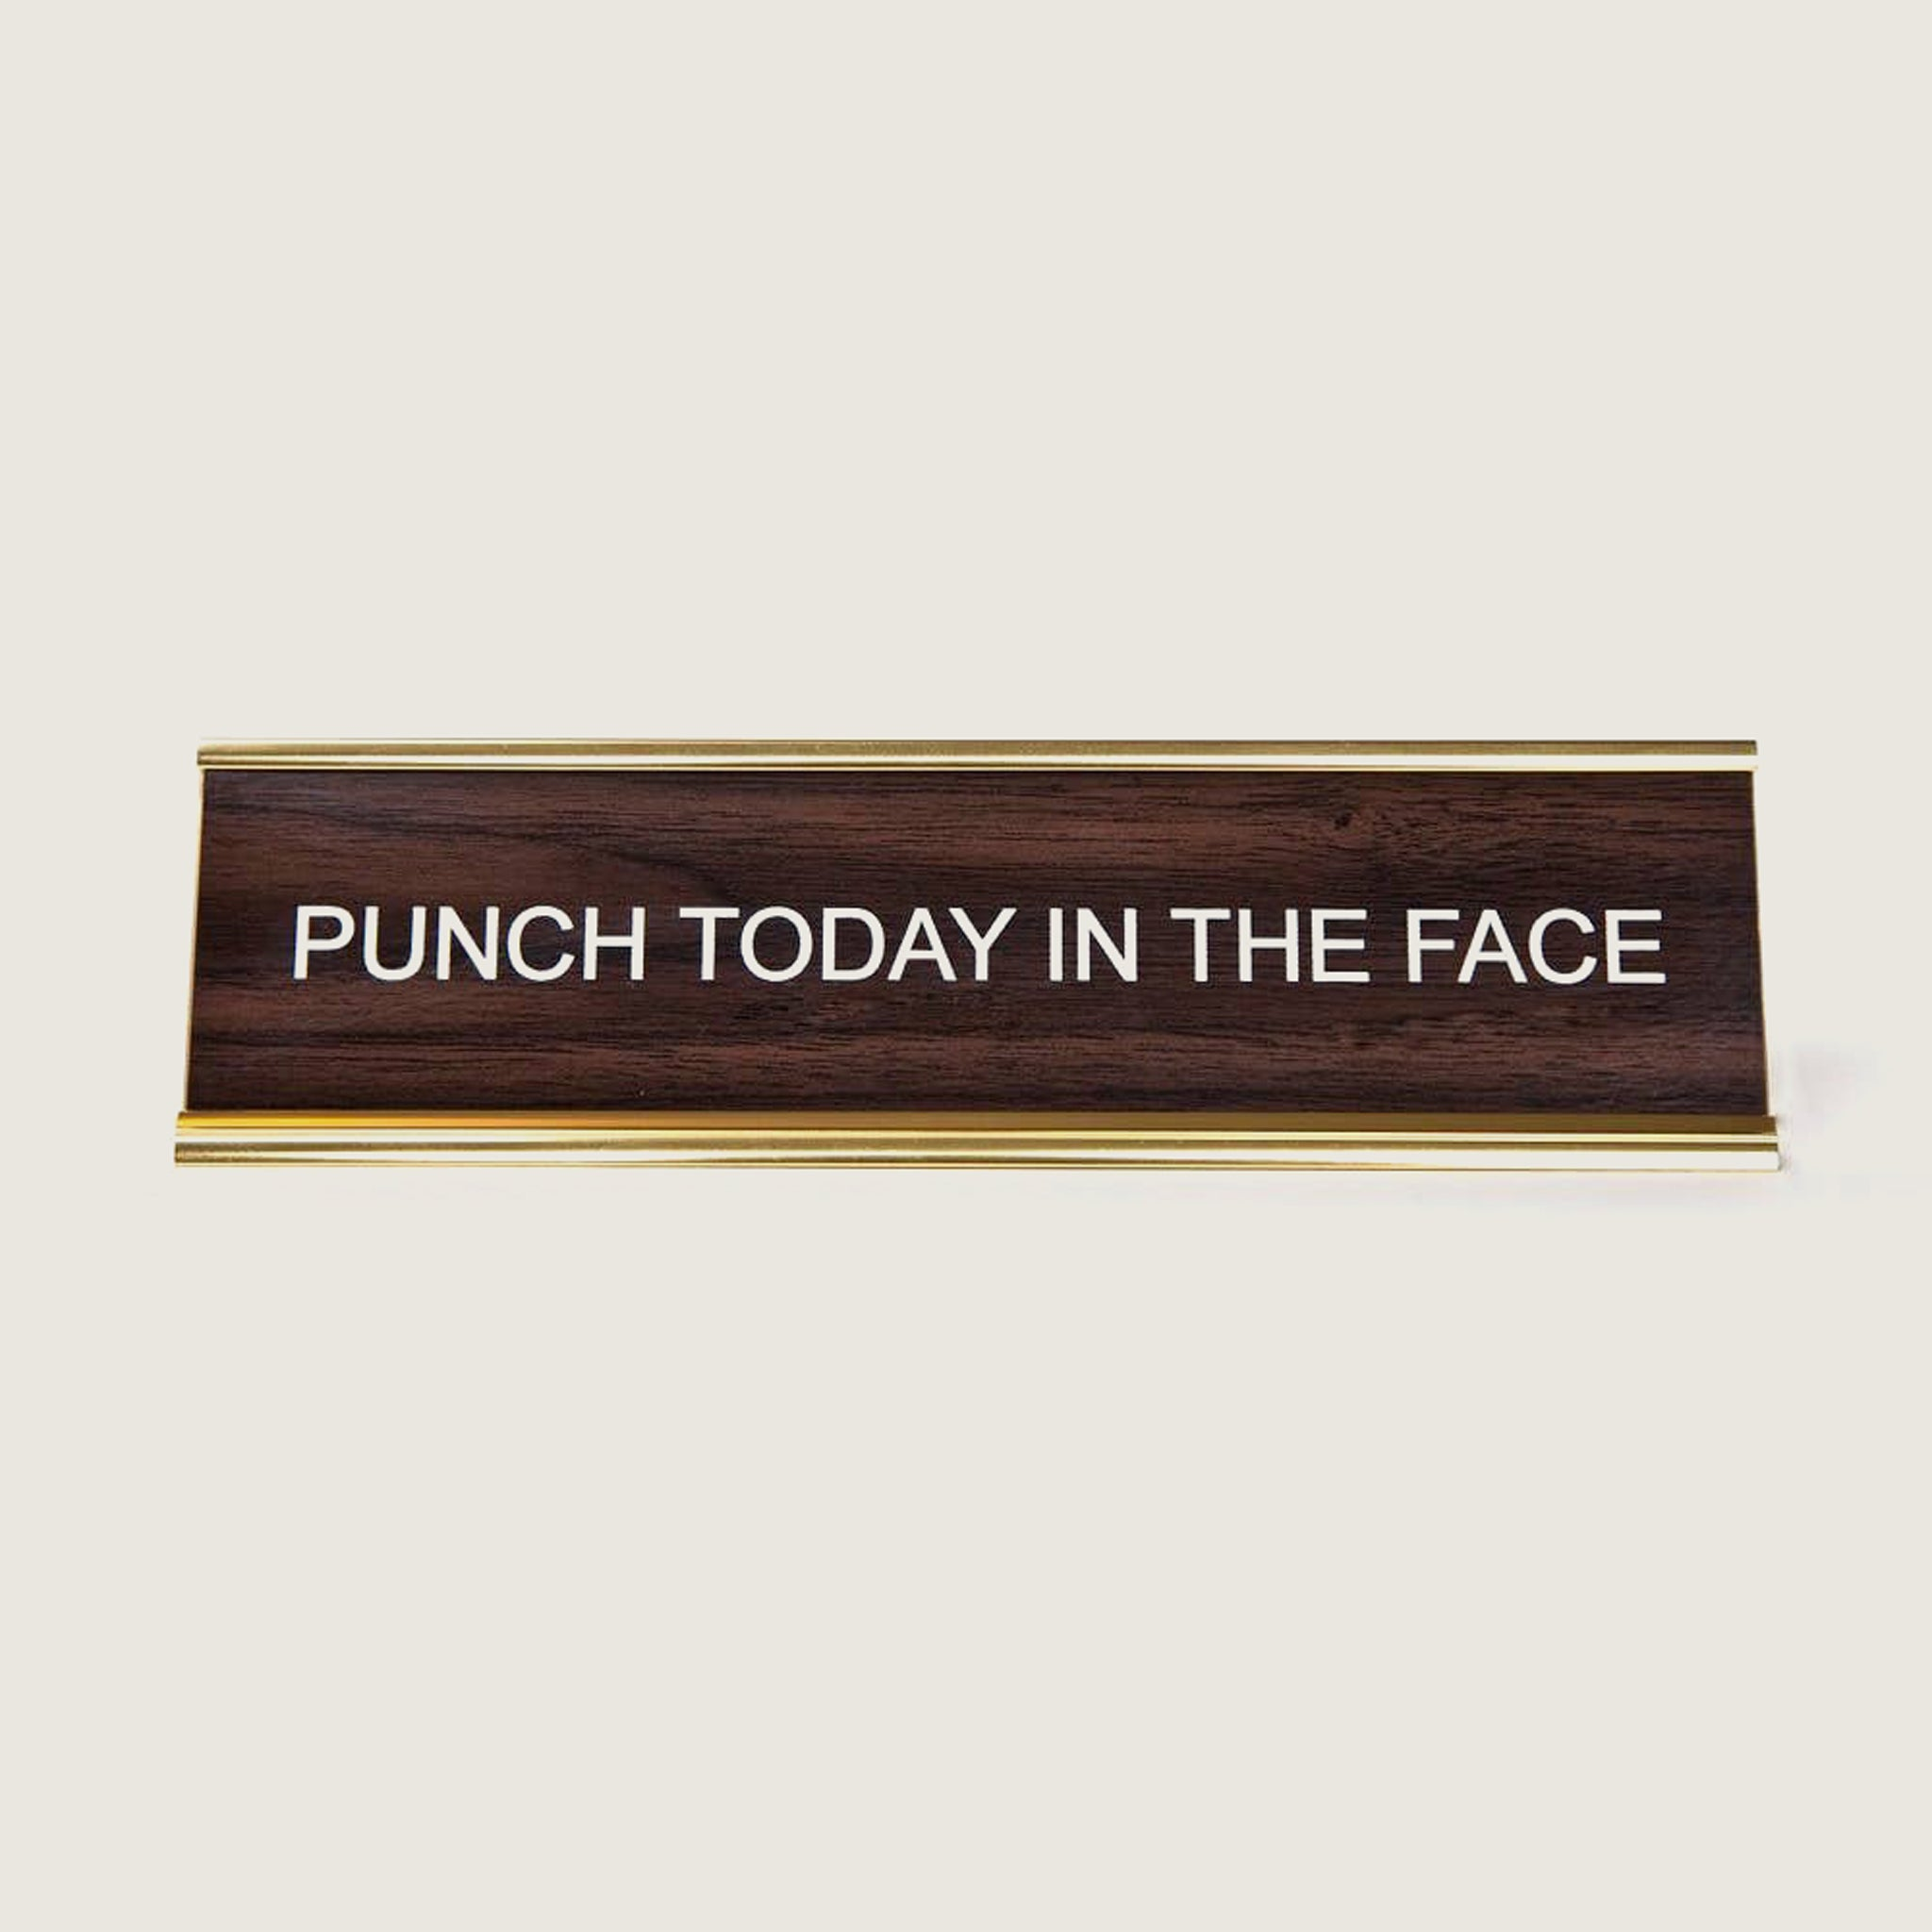 Punch Today in the Face - Blackbird General Store